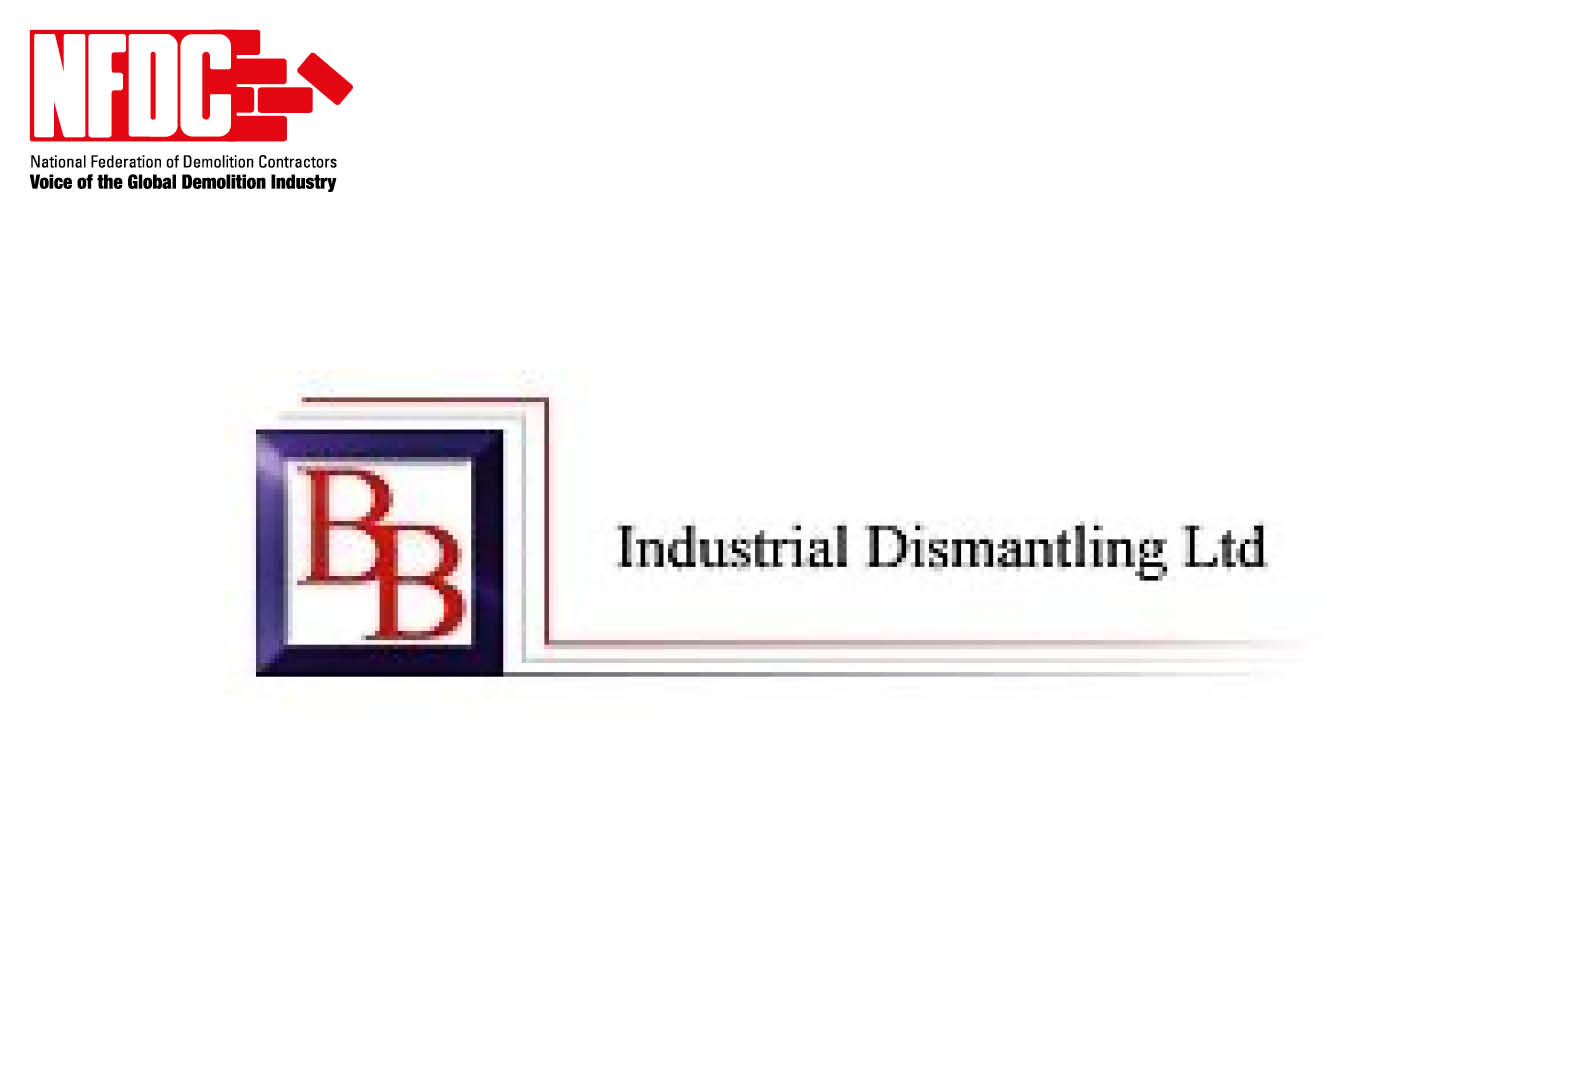 B and B Industrial Dismantling